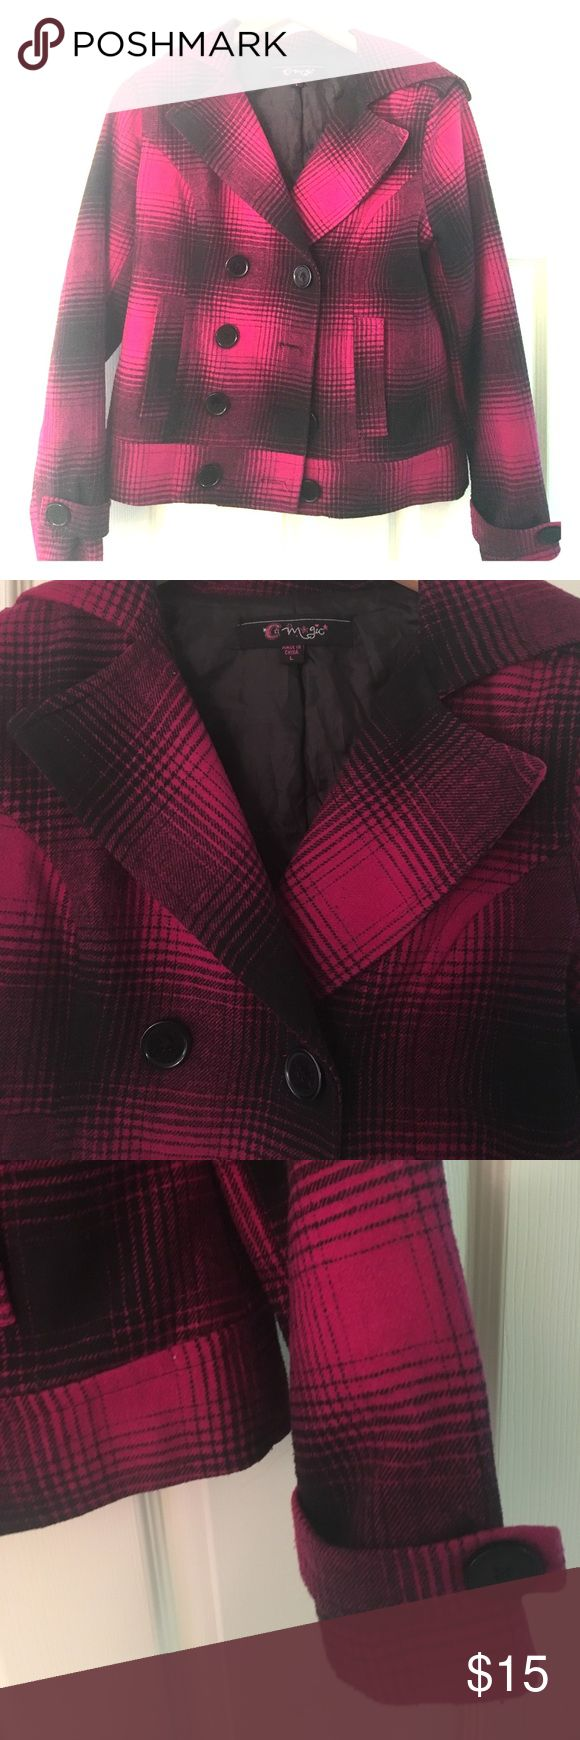 Black/Fuschia Peacoat Black/Fuschia Woman's Plaid Peacoat. Size L Jackets & Coats Pea Coats